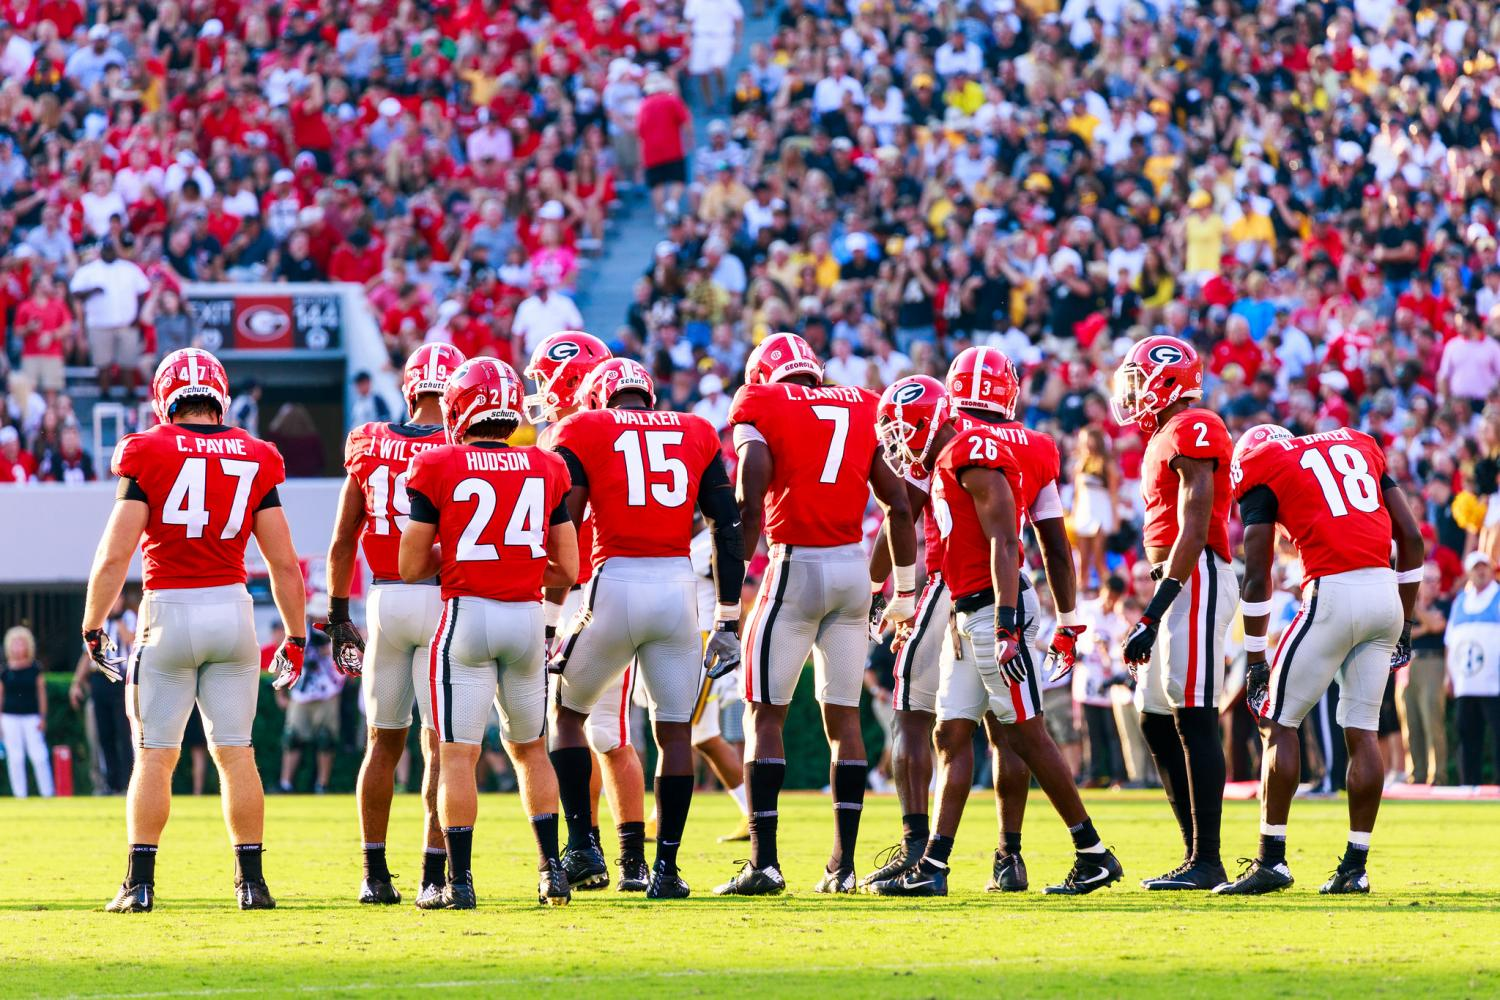 The Bulldogs defense hope to rise to the occasion against Mississippi State. Photo by: Brandon Sweeney